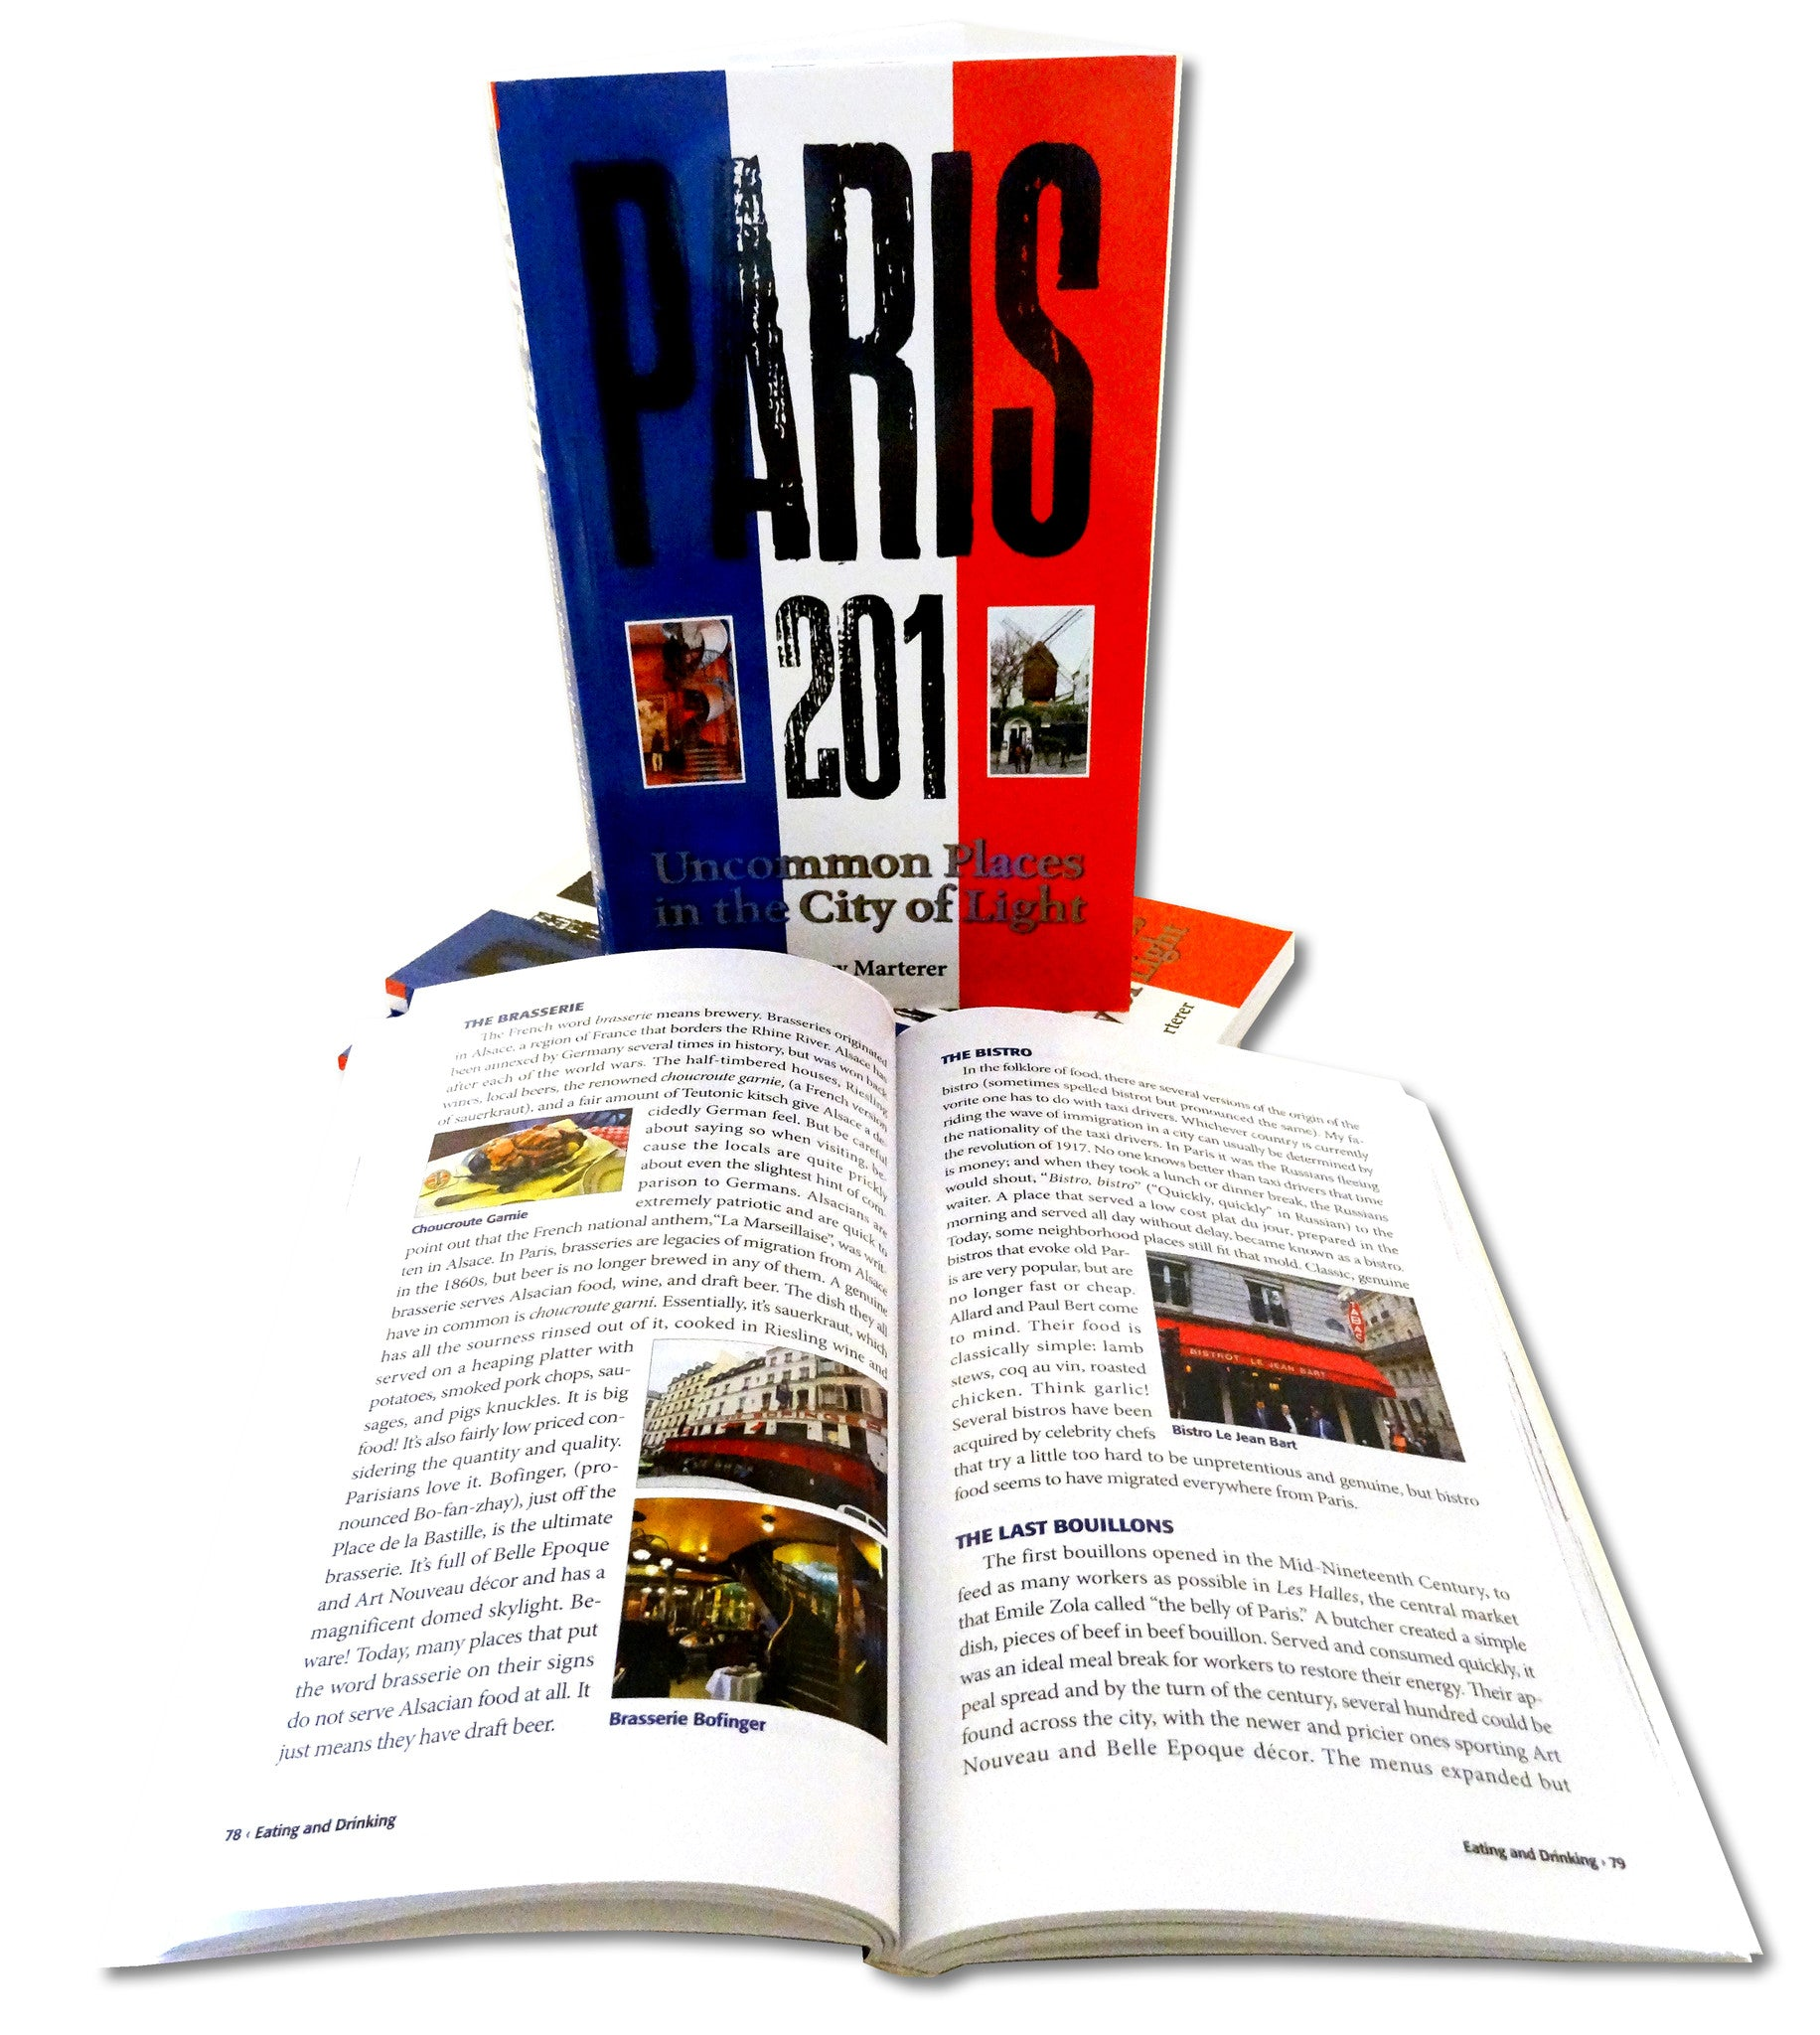 Paris 201: Uncommon Places in the City of Light book by Jerry Marterer Starbooks